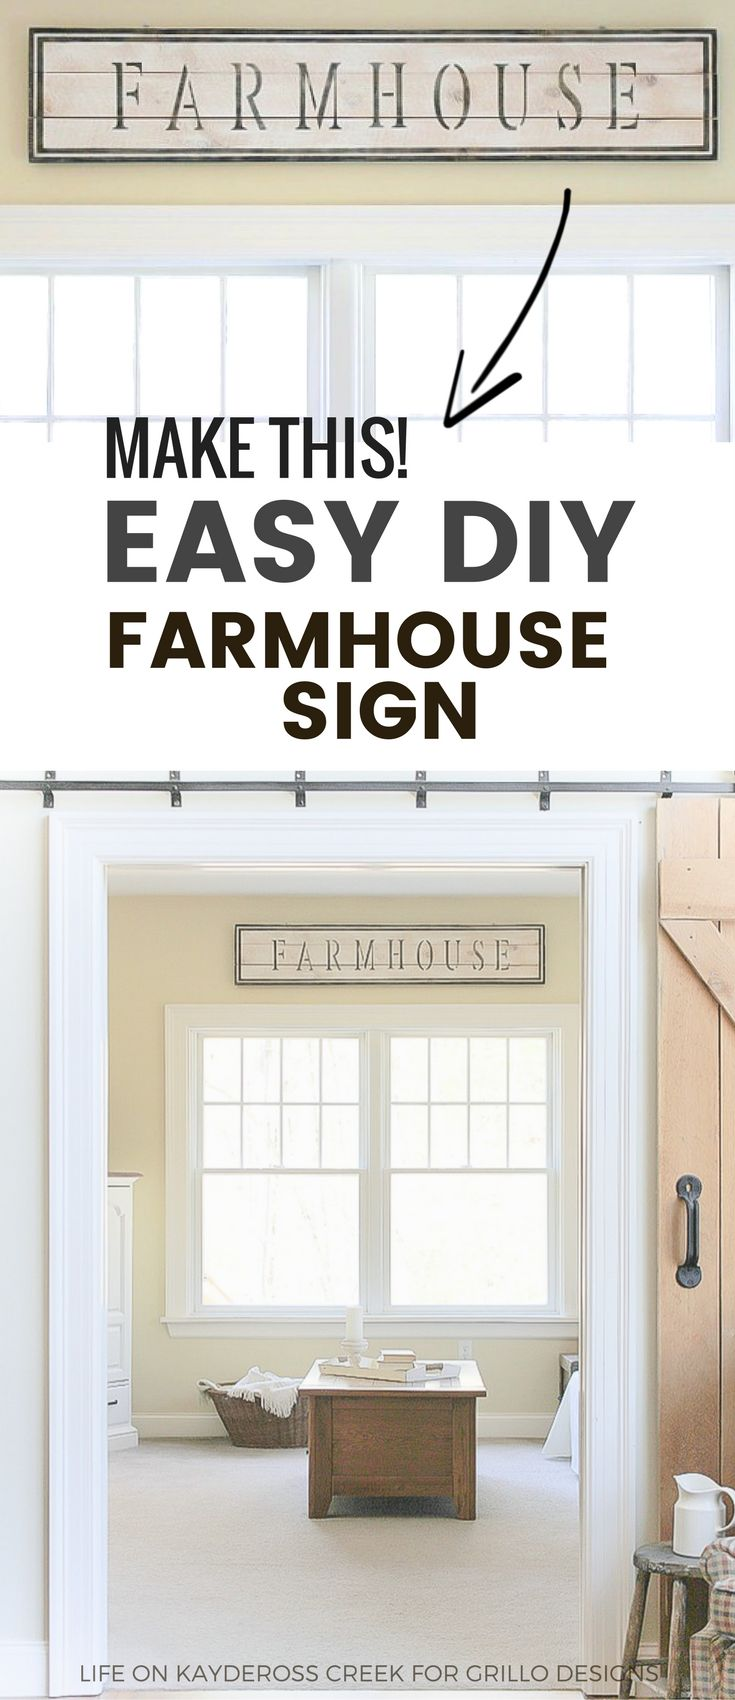 How to make a DIY farmhouse sign that adds character to your home using simple craft paint and stencils. Create unique farmhouse décor for your home.